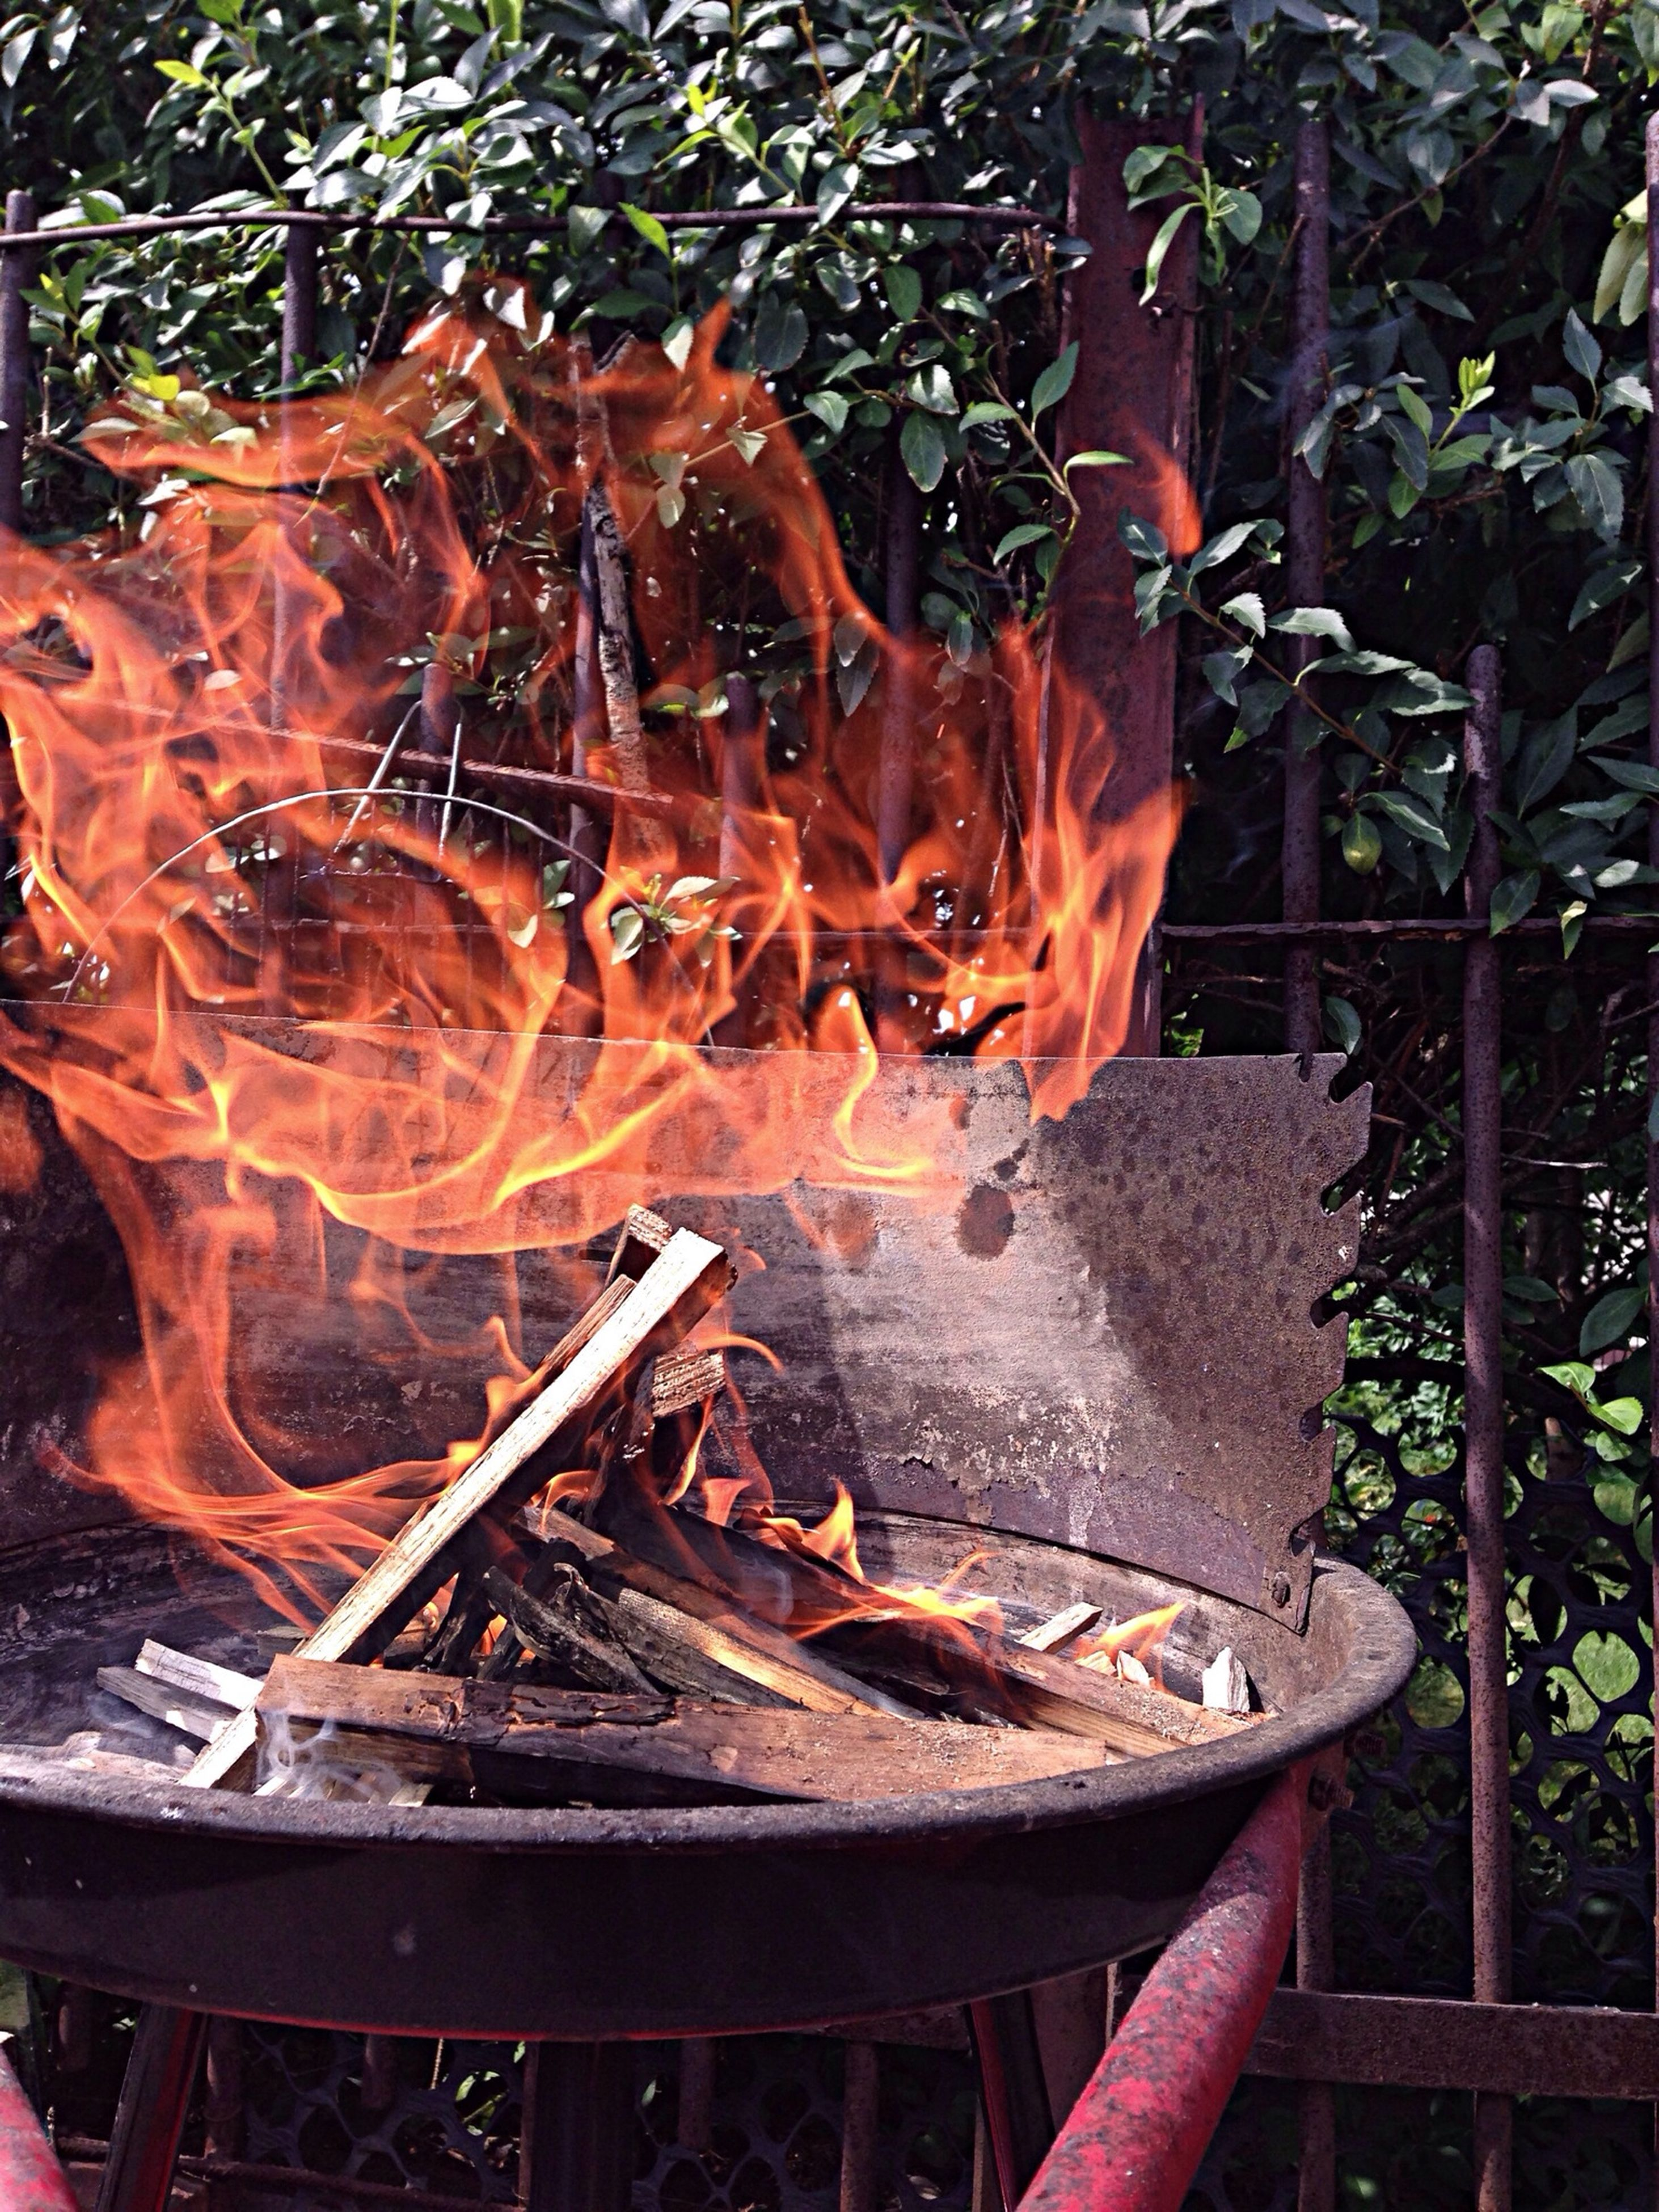 food and drink, heat - temperature, fire - natural phenomenon, burning, flame, meat, food, freshness, barbecue grill, barbecue, close-up, preparation, firewood, wood - material, cooking, high angle view, metal, indoors, still life, seafood